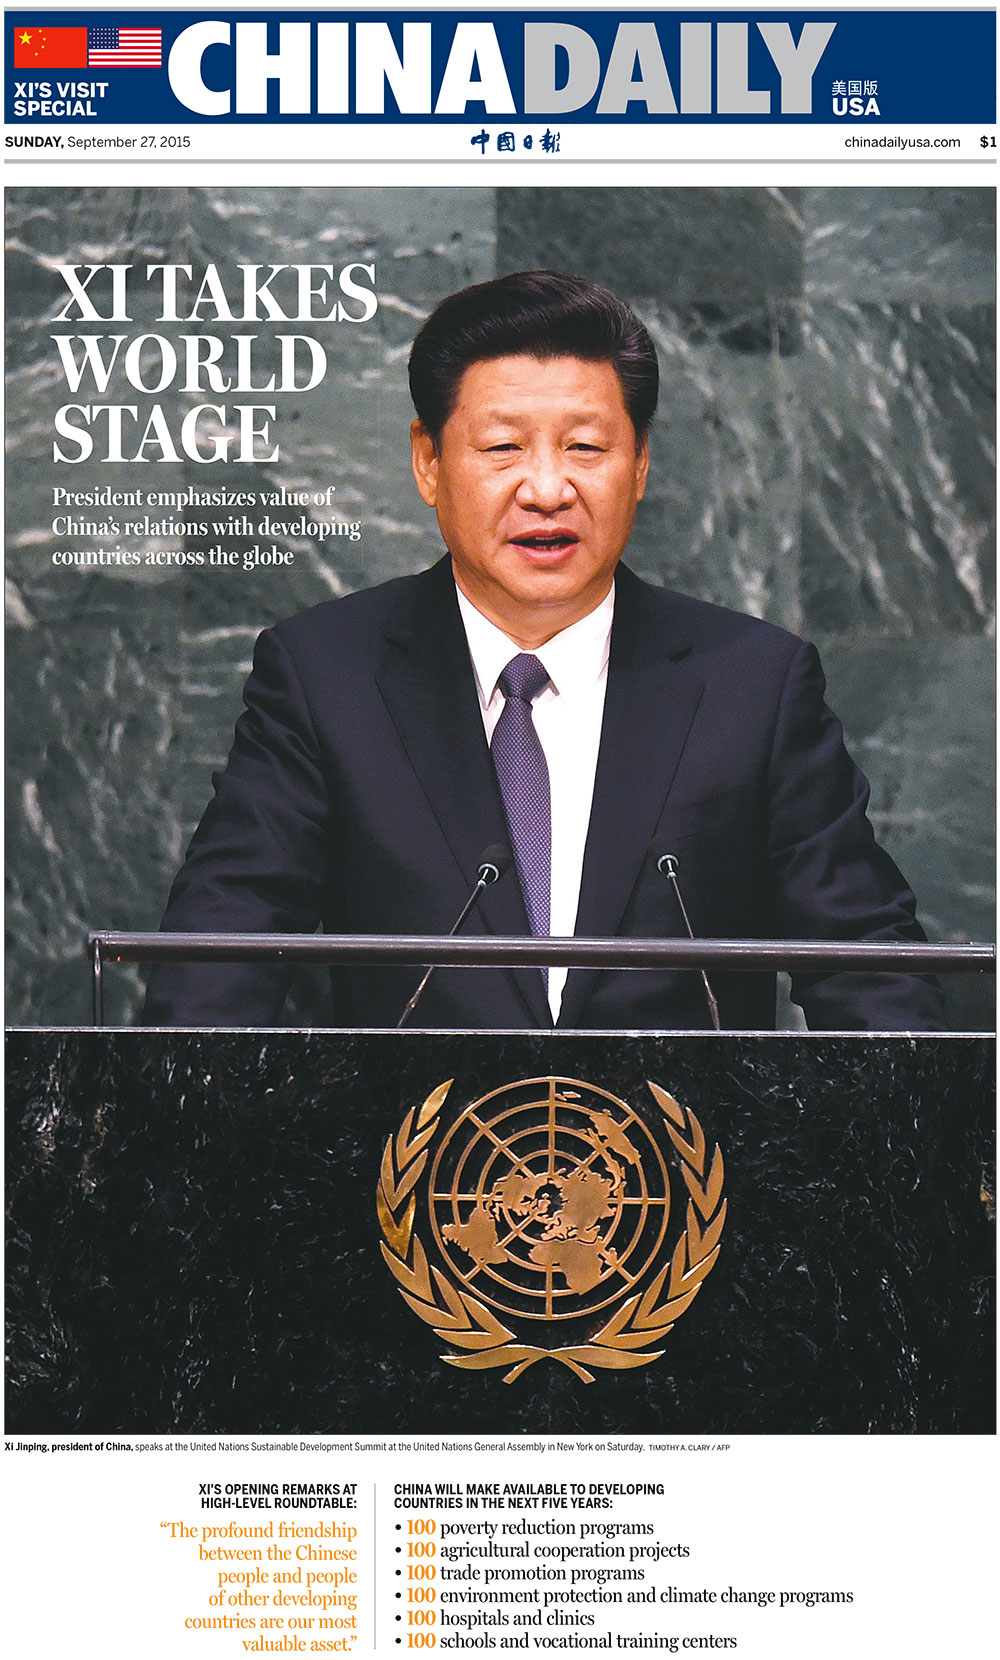 'China Daily,' U.S. edition, September 27, 2015.